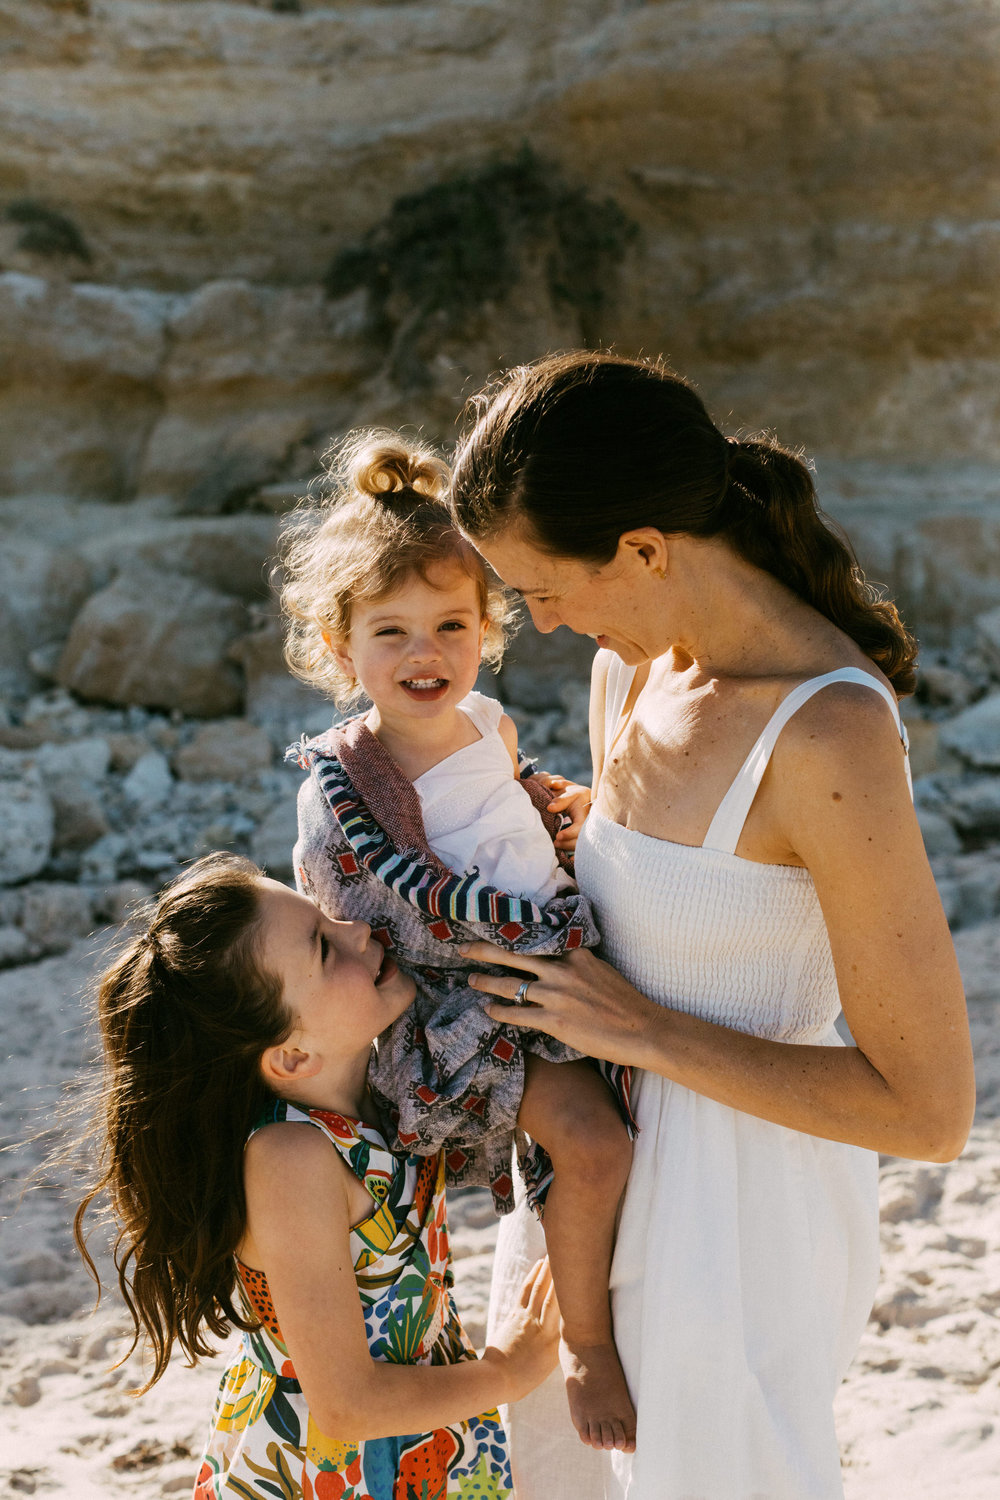 Natural Portraits for Large Family on Beach South Australia 028.JPG